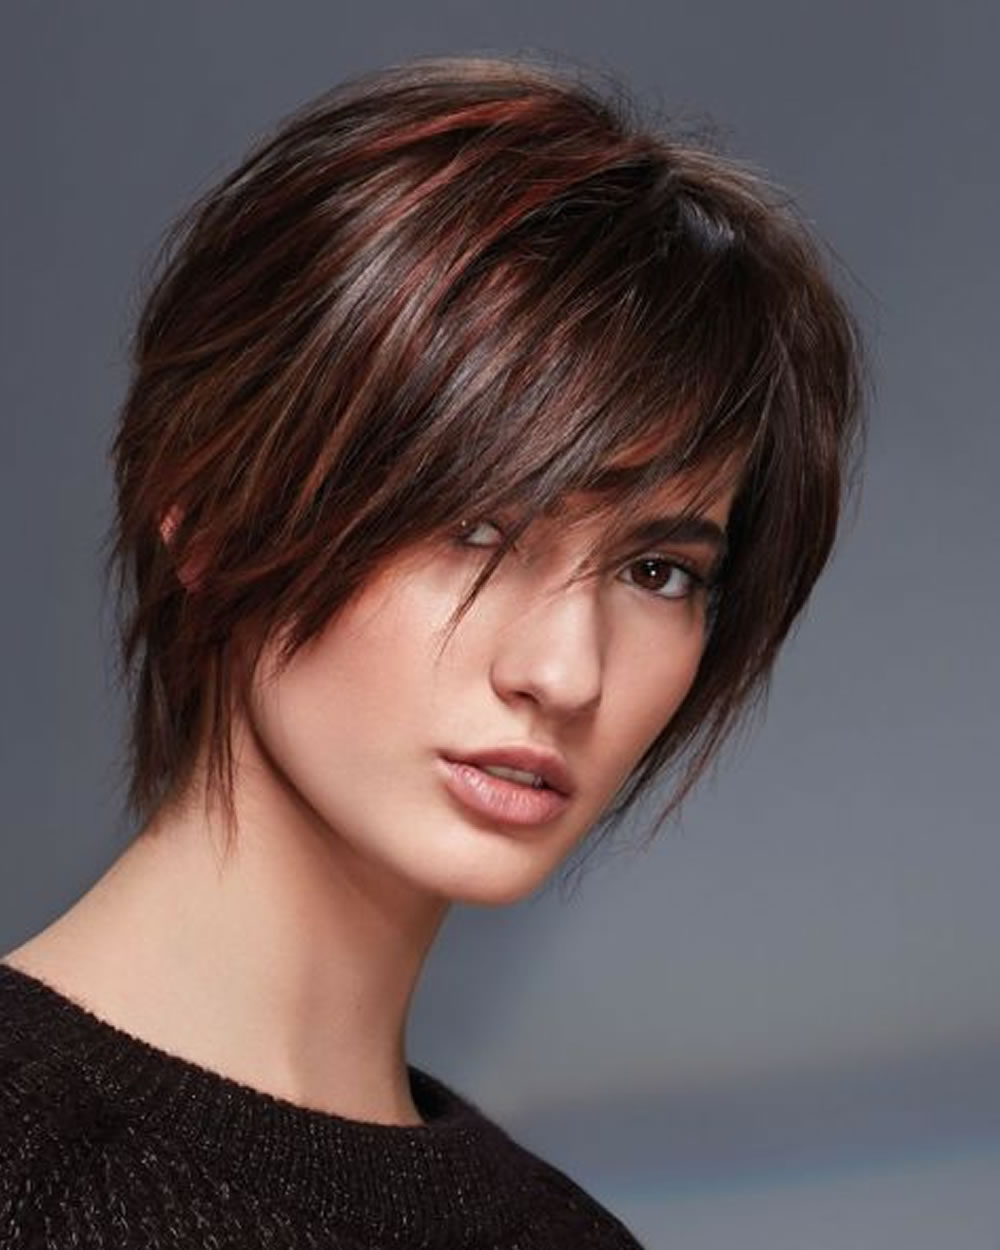 Top 20 Matchless Short Haircuts For Women With Round Faces 2018 2019 With Regard To Short Haircuts For Round Face Women (View 20 of 25)